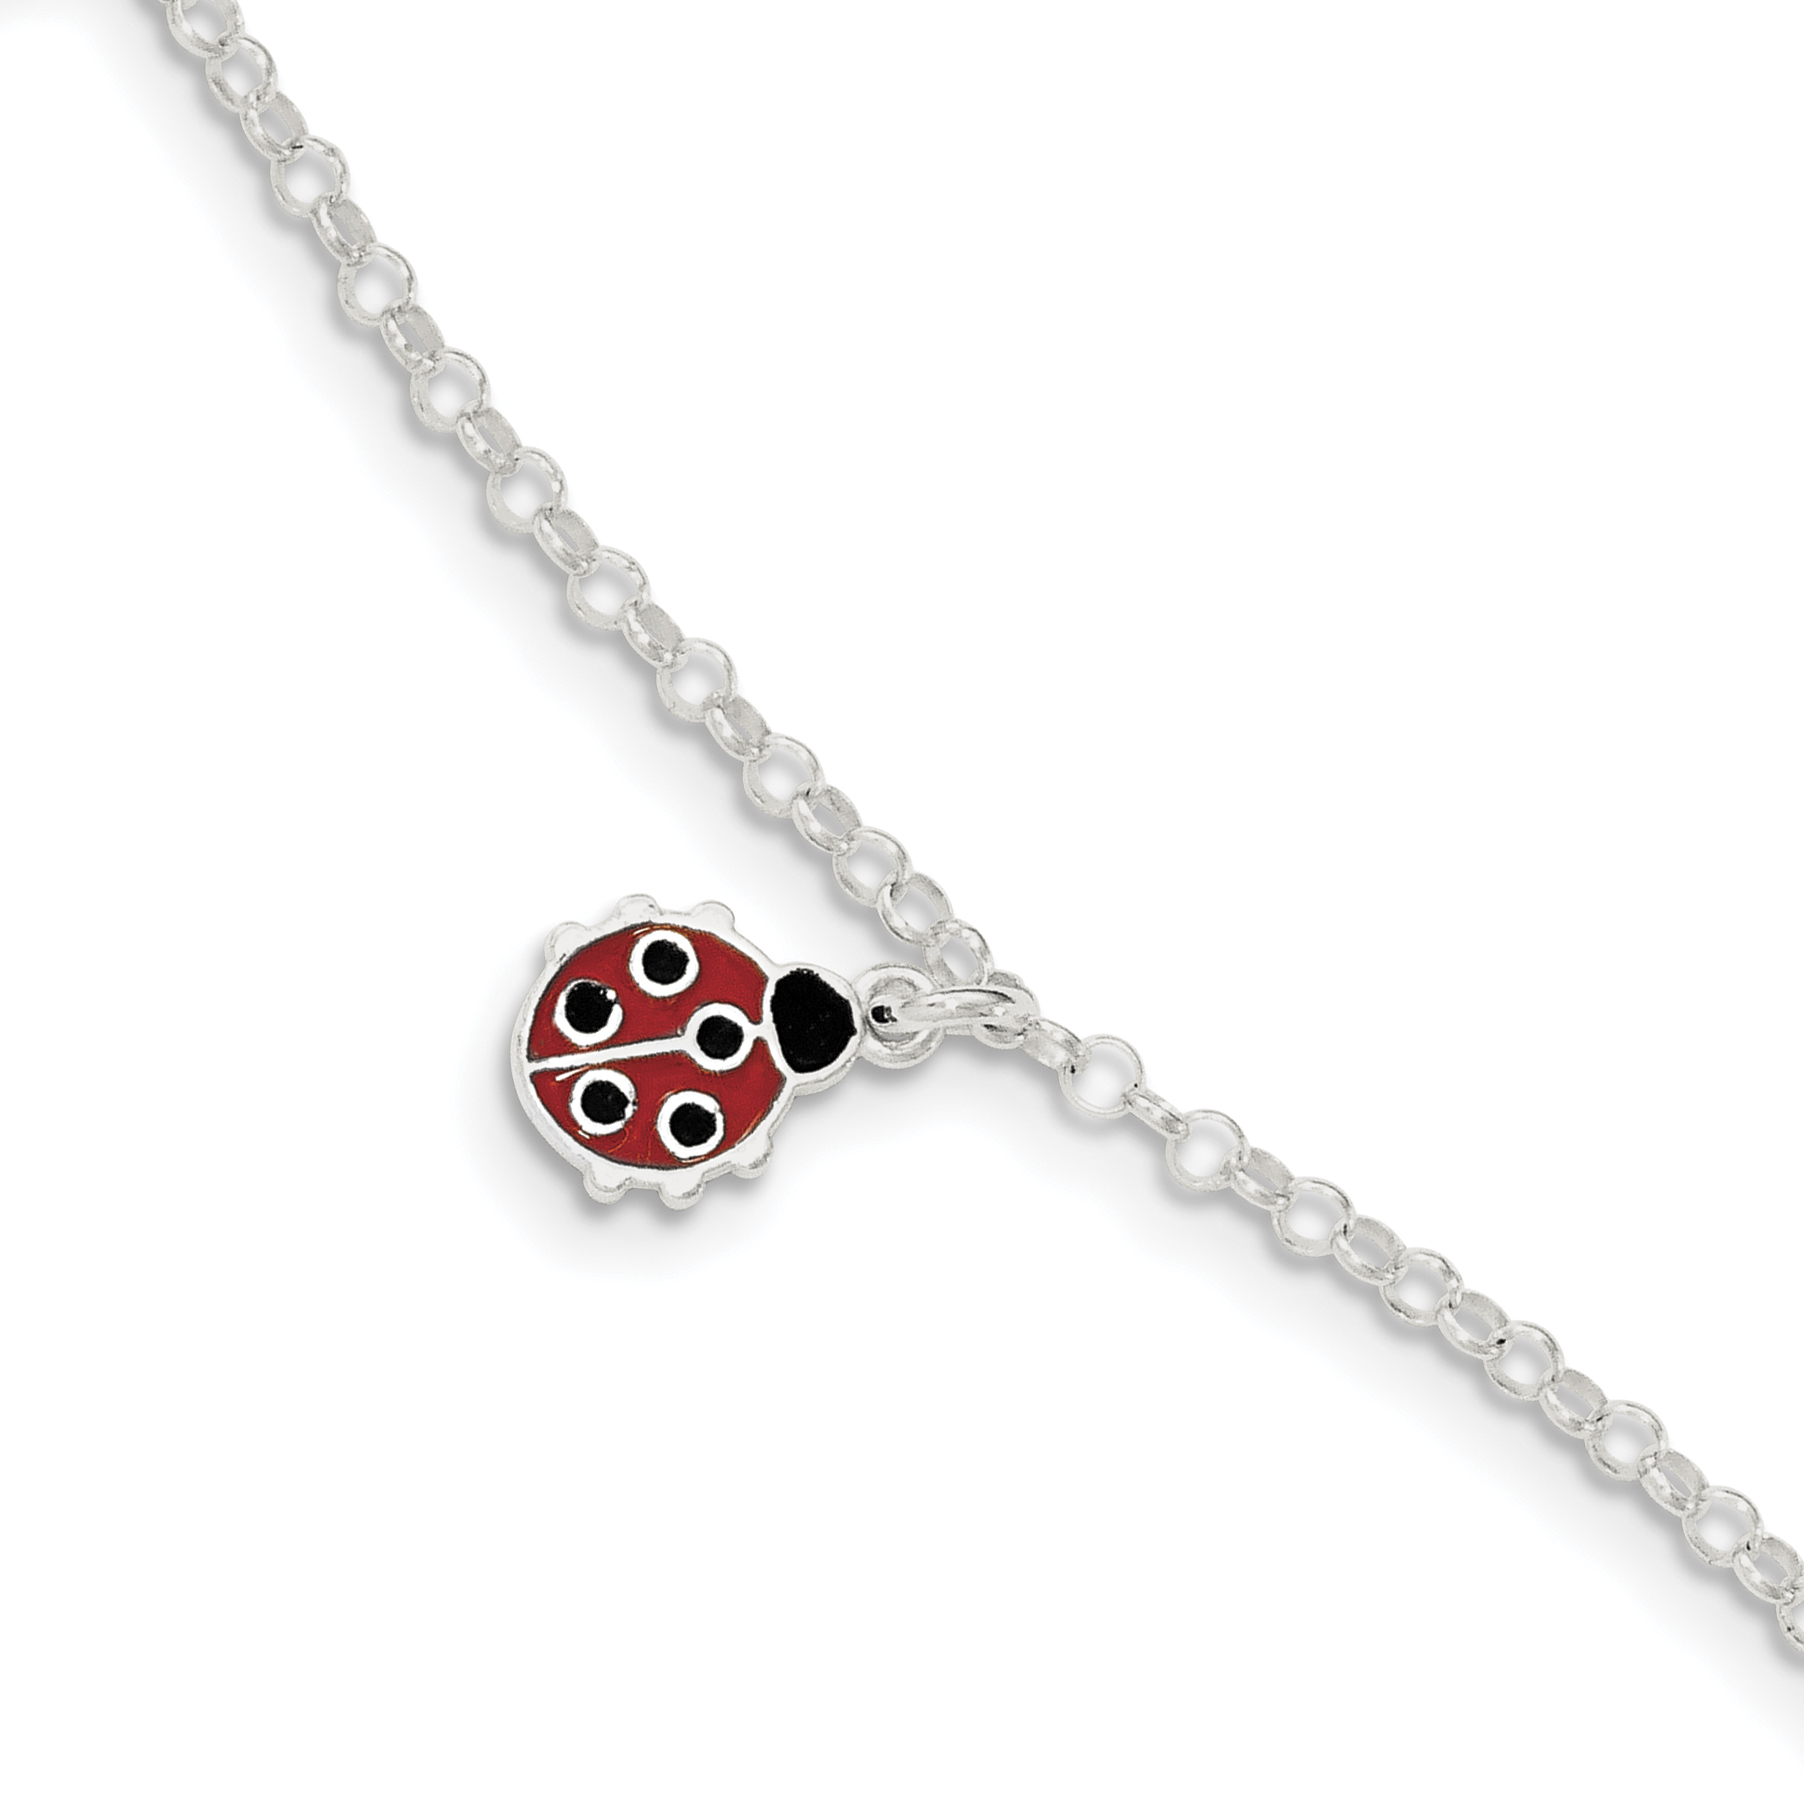 925 Sterling Silver Childrens Enameled Ladybug Bracelet 6 Inch Fine Jewelry Gifts For Women For Her - image 3 of 3